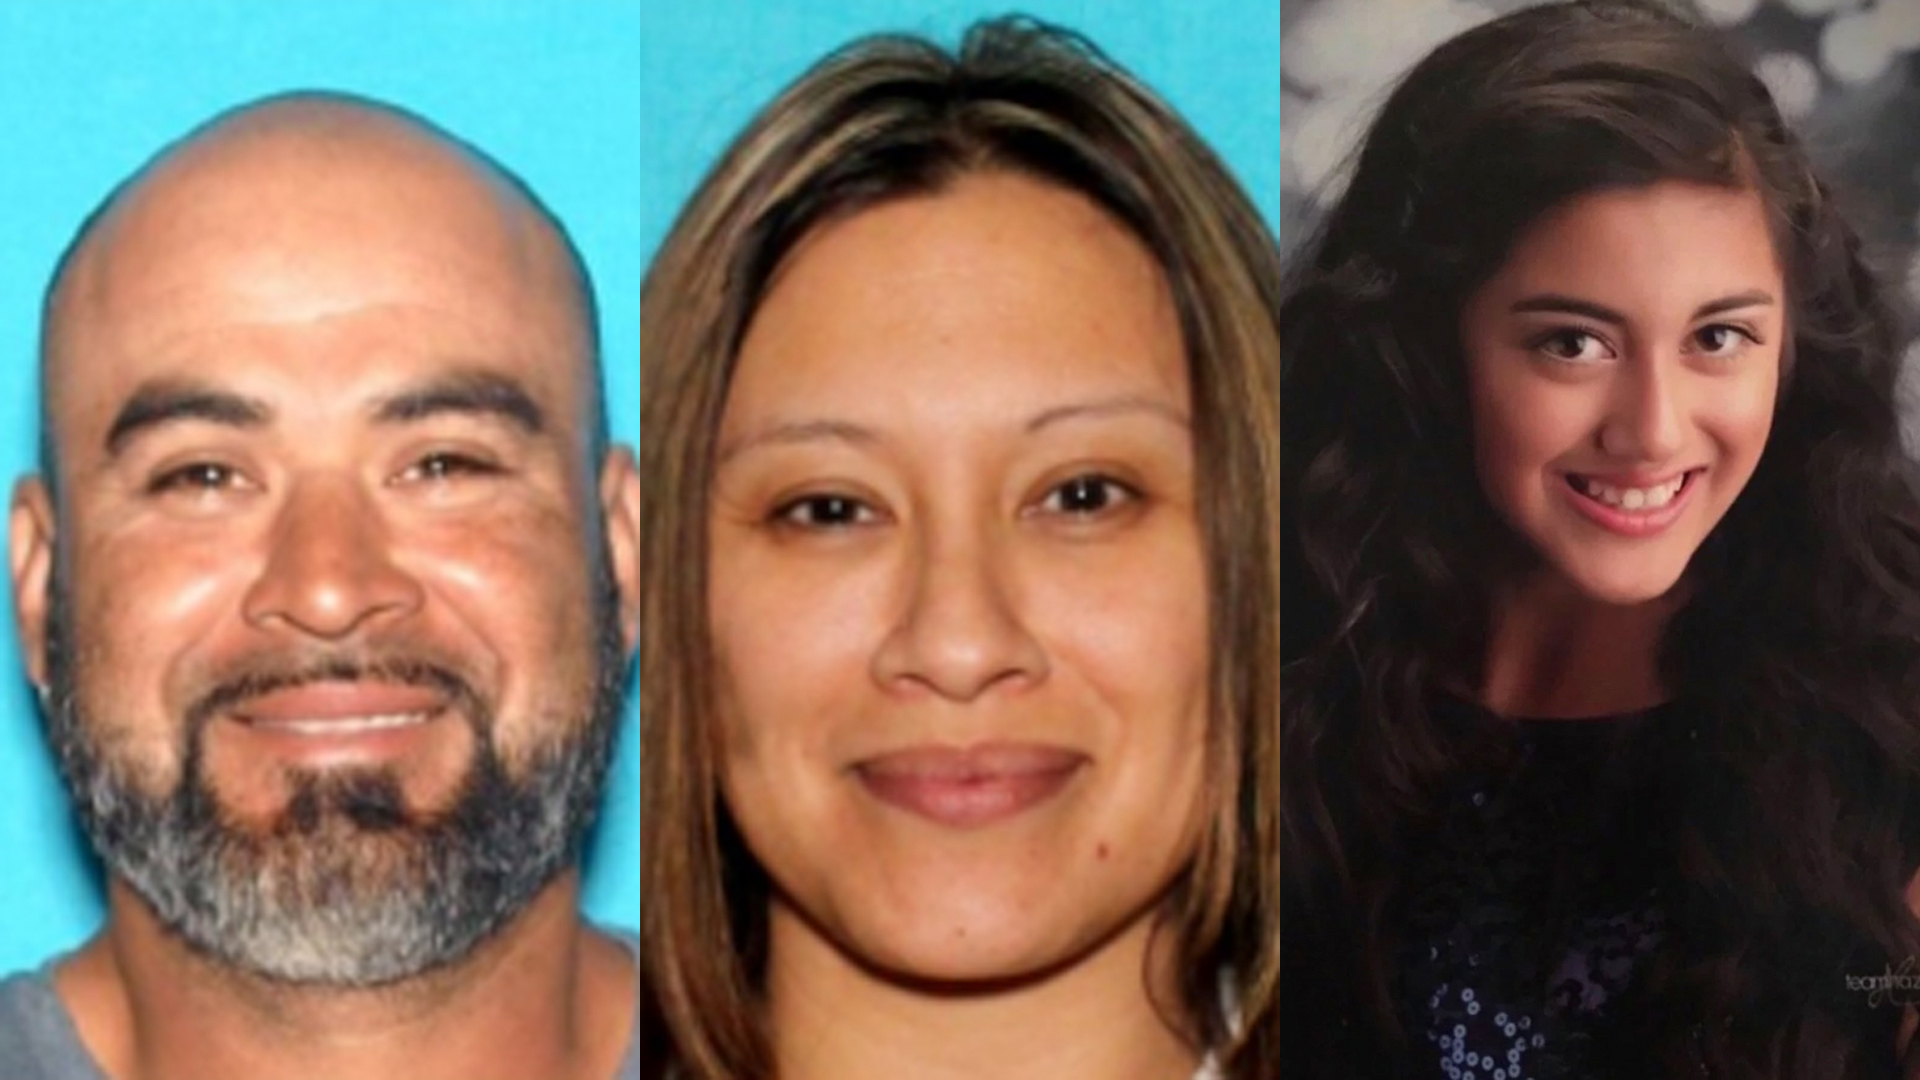 Roman Cerratos, left, Maricela Mercado, center, and Alora Benitez, right, are seen in photos released by the L.A. County Sheriff's Department.